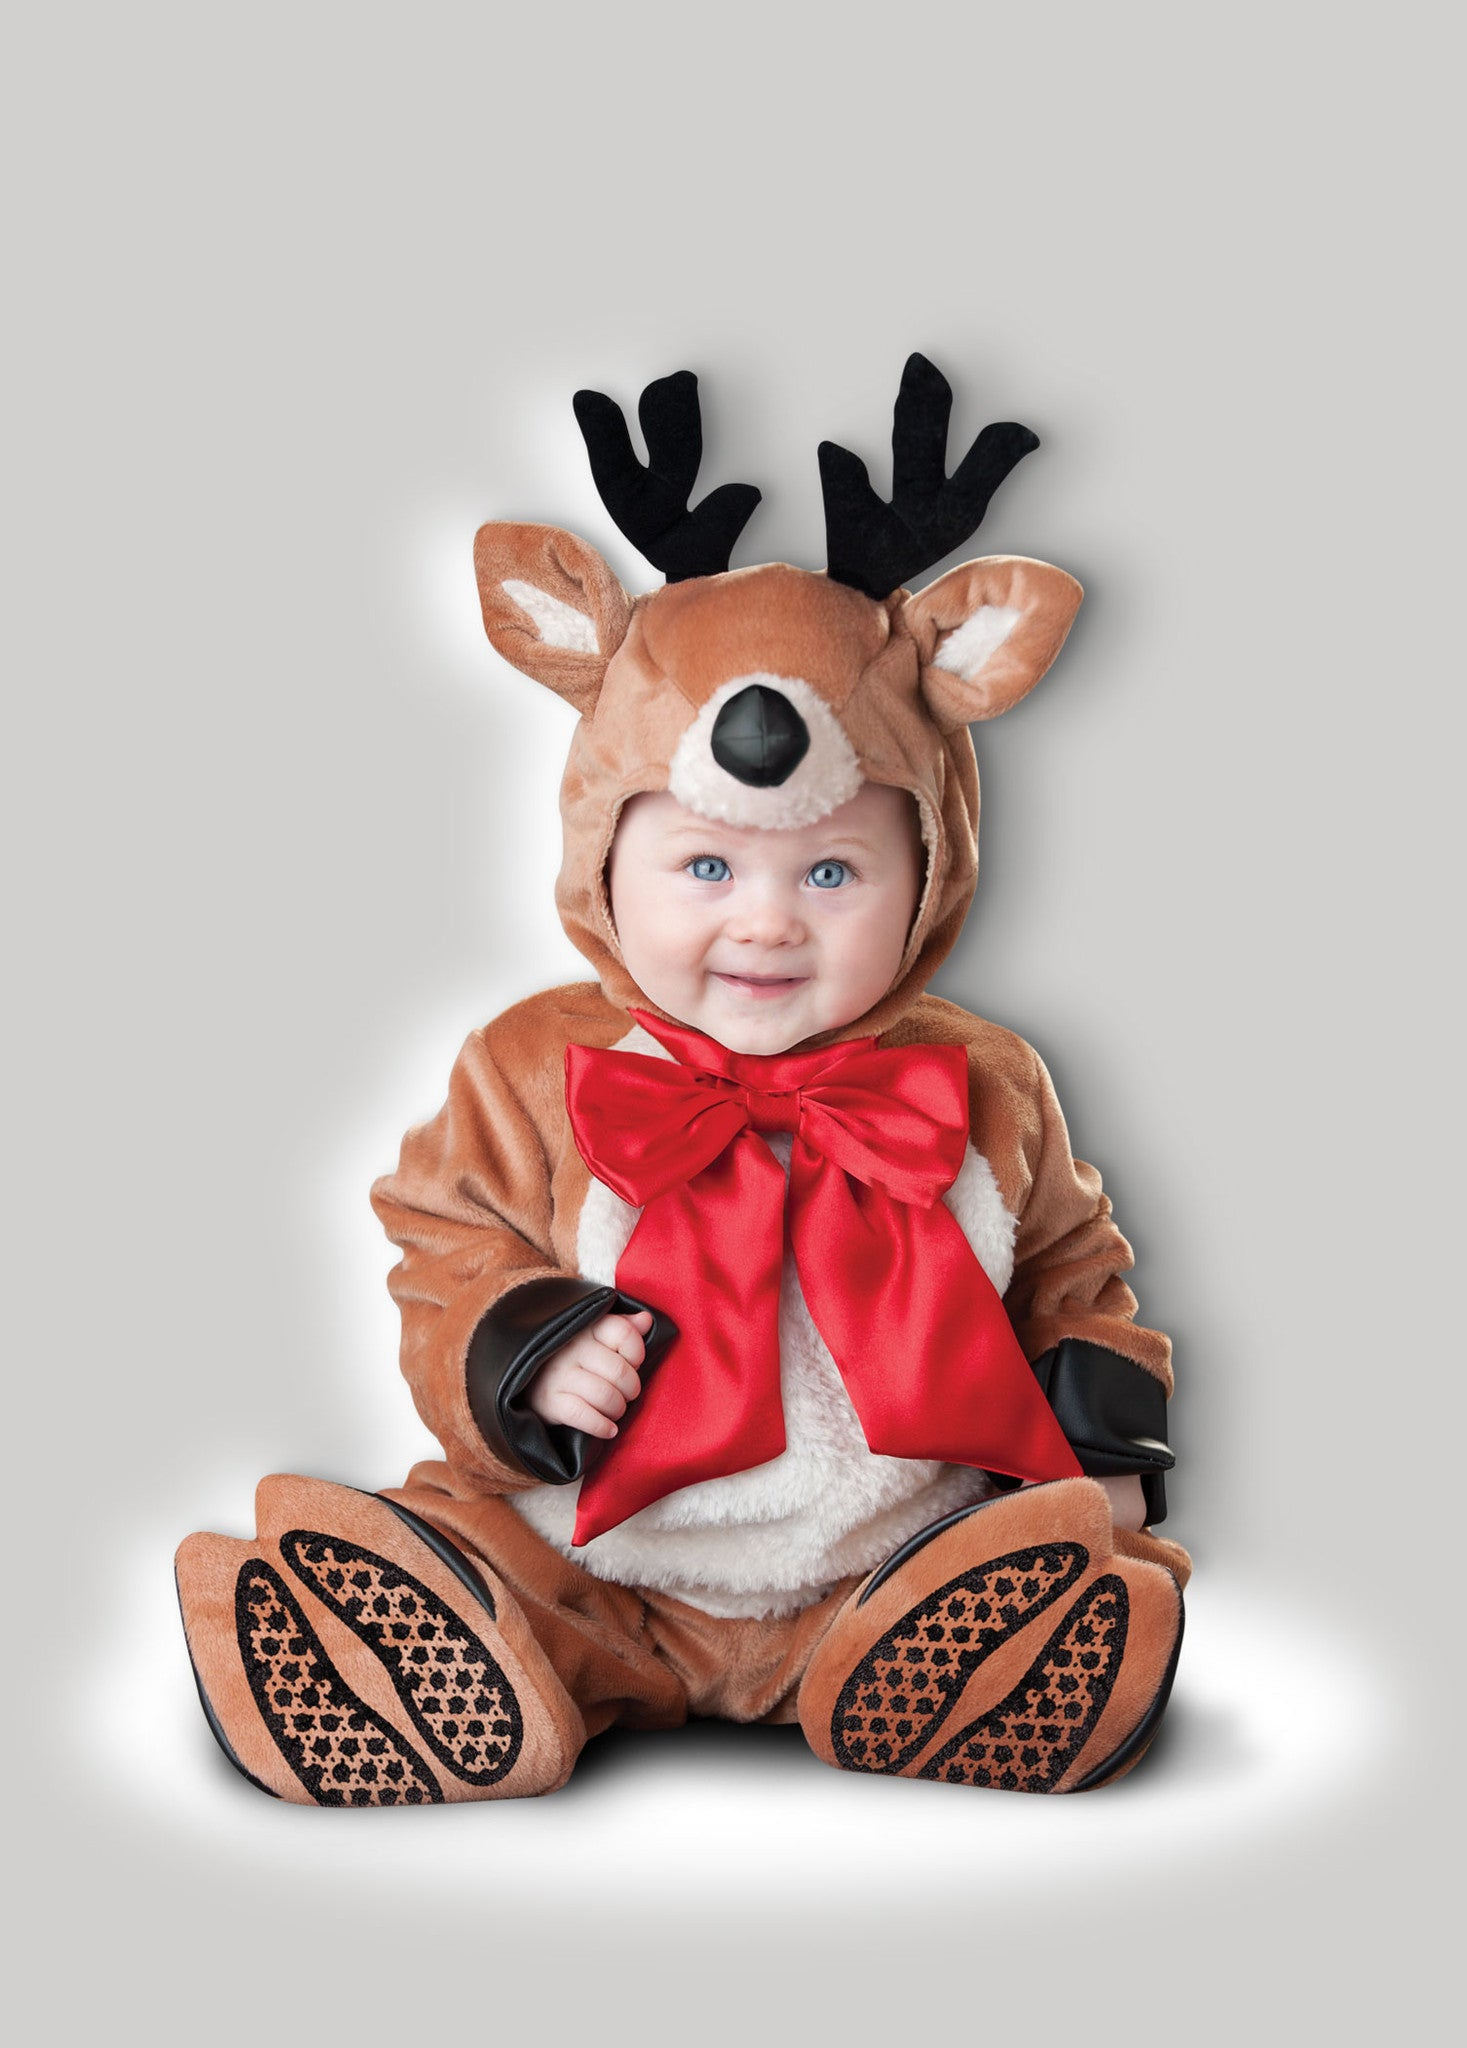 Baby Girl Christmas Outfit! - BODYSUIT (Carters® brand): Merry Christmas in gold glitter vinyl with adorable reindeer and Christmas wreath - PETTISKIRT: Red and green pettiskirt with an adjustable elastic waist and gold glitter bow - HEADBAND: Matching gold faux leather bow on a.